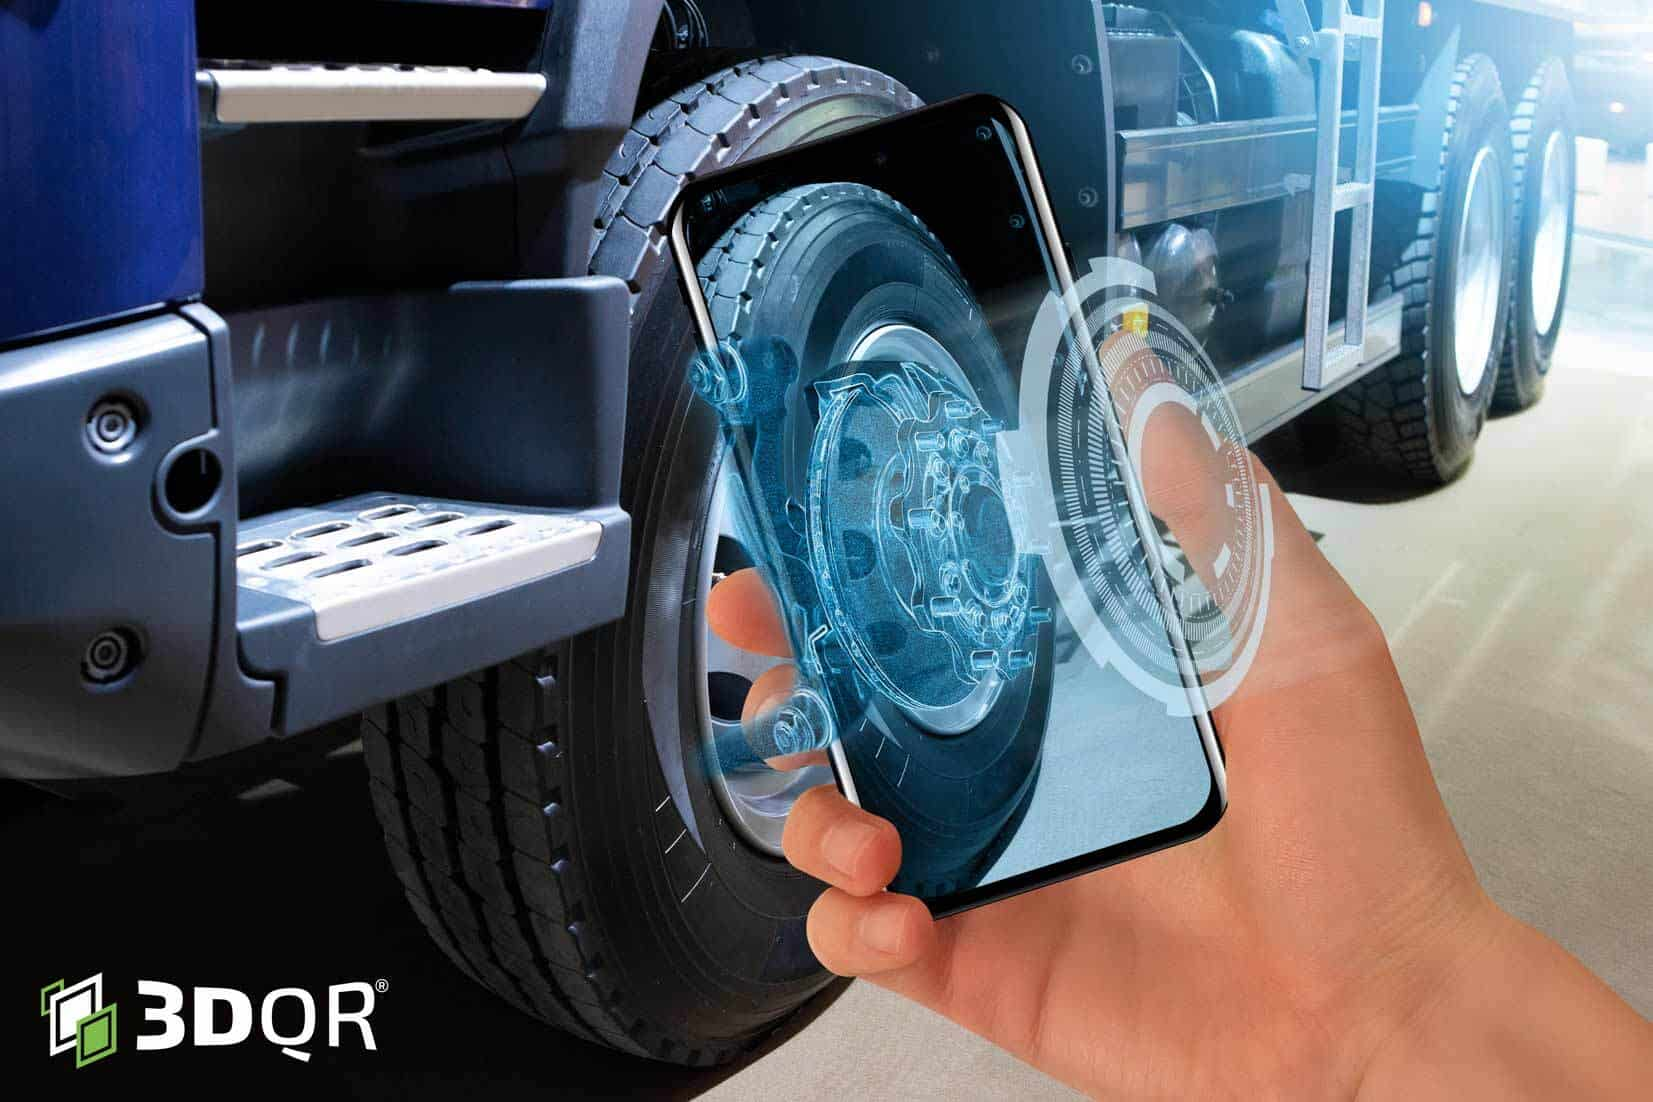 a phone showing parts of a vehicle's wheel in AR